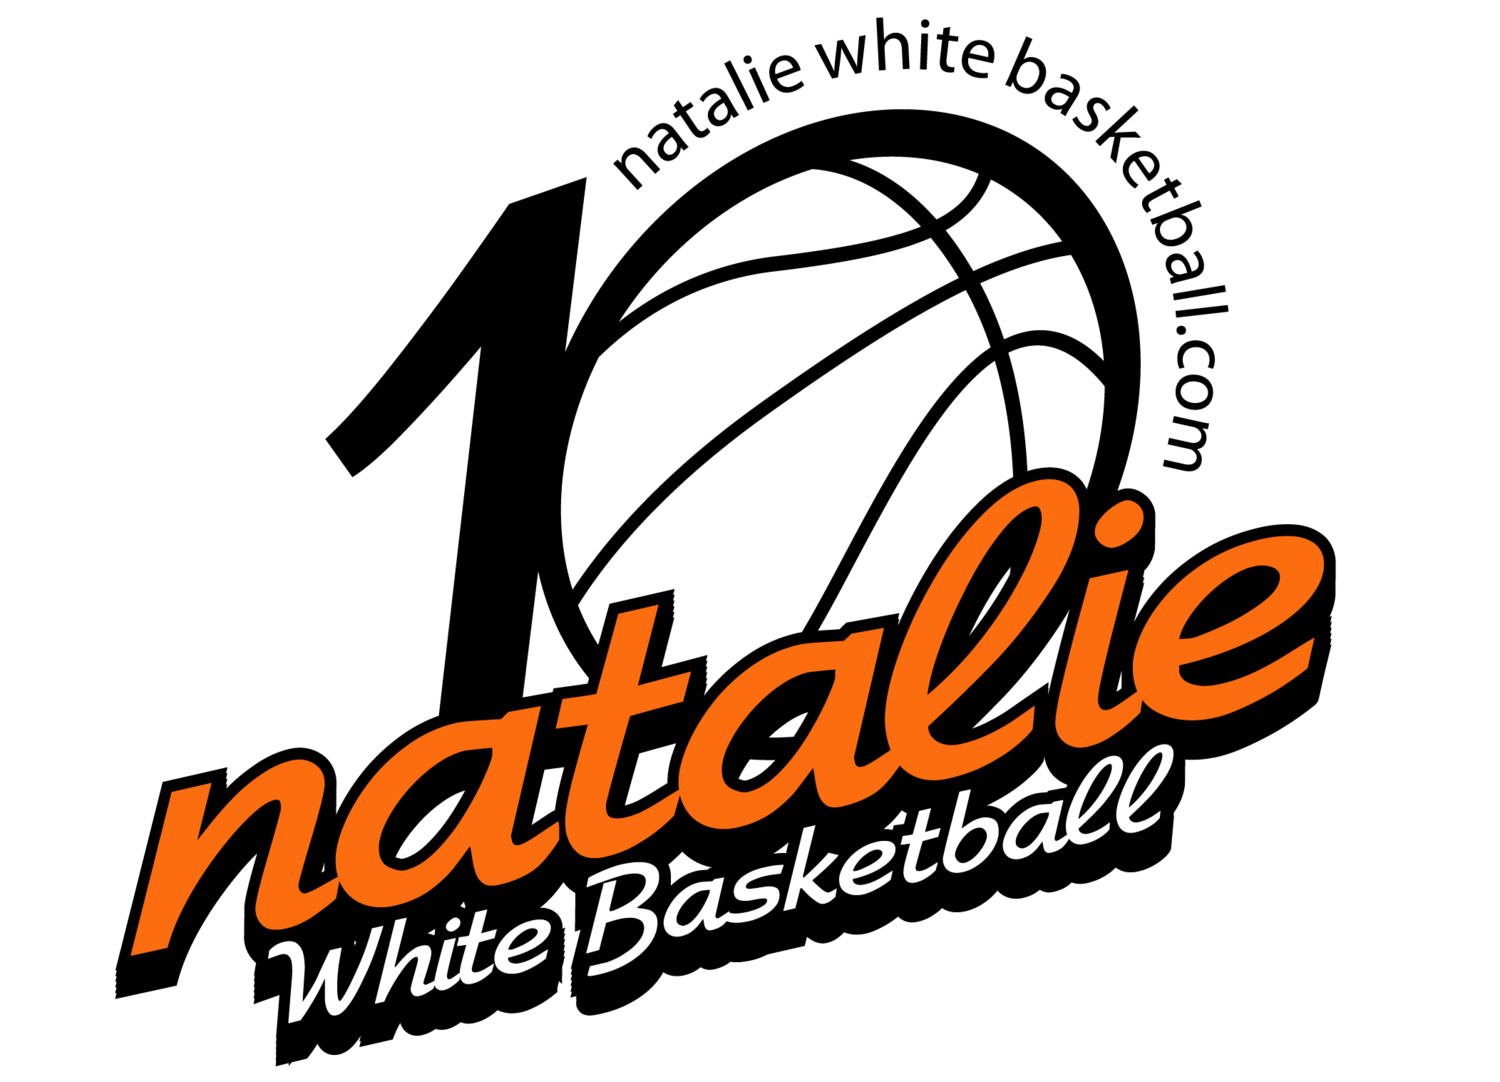 Natalie White Basketball